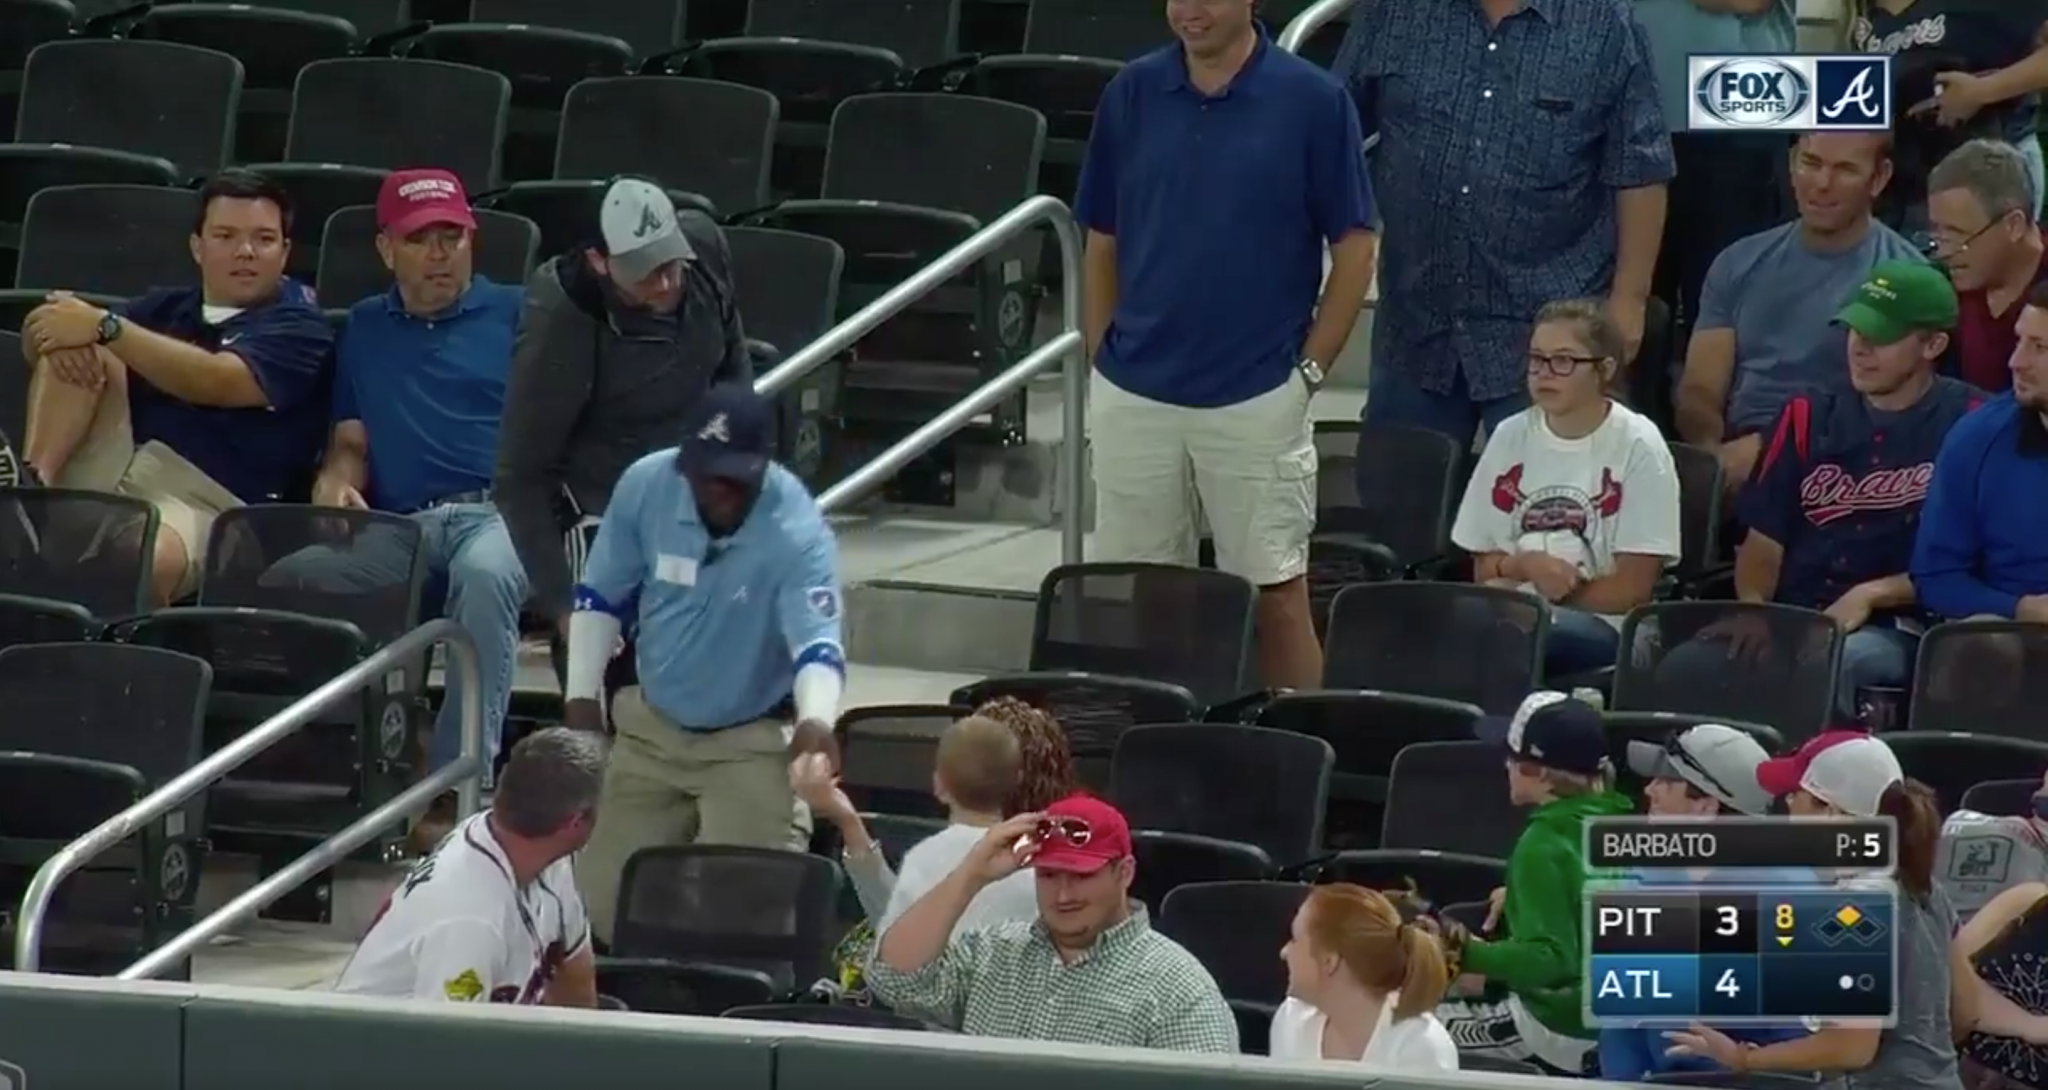 A Braves security guard takes a ball from a kid at Wednesday night's game. (MLB.tv)